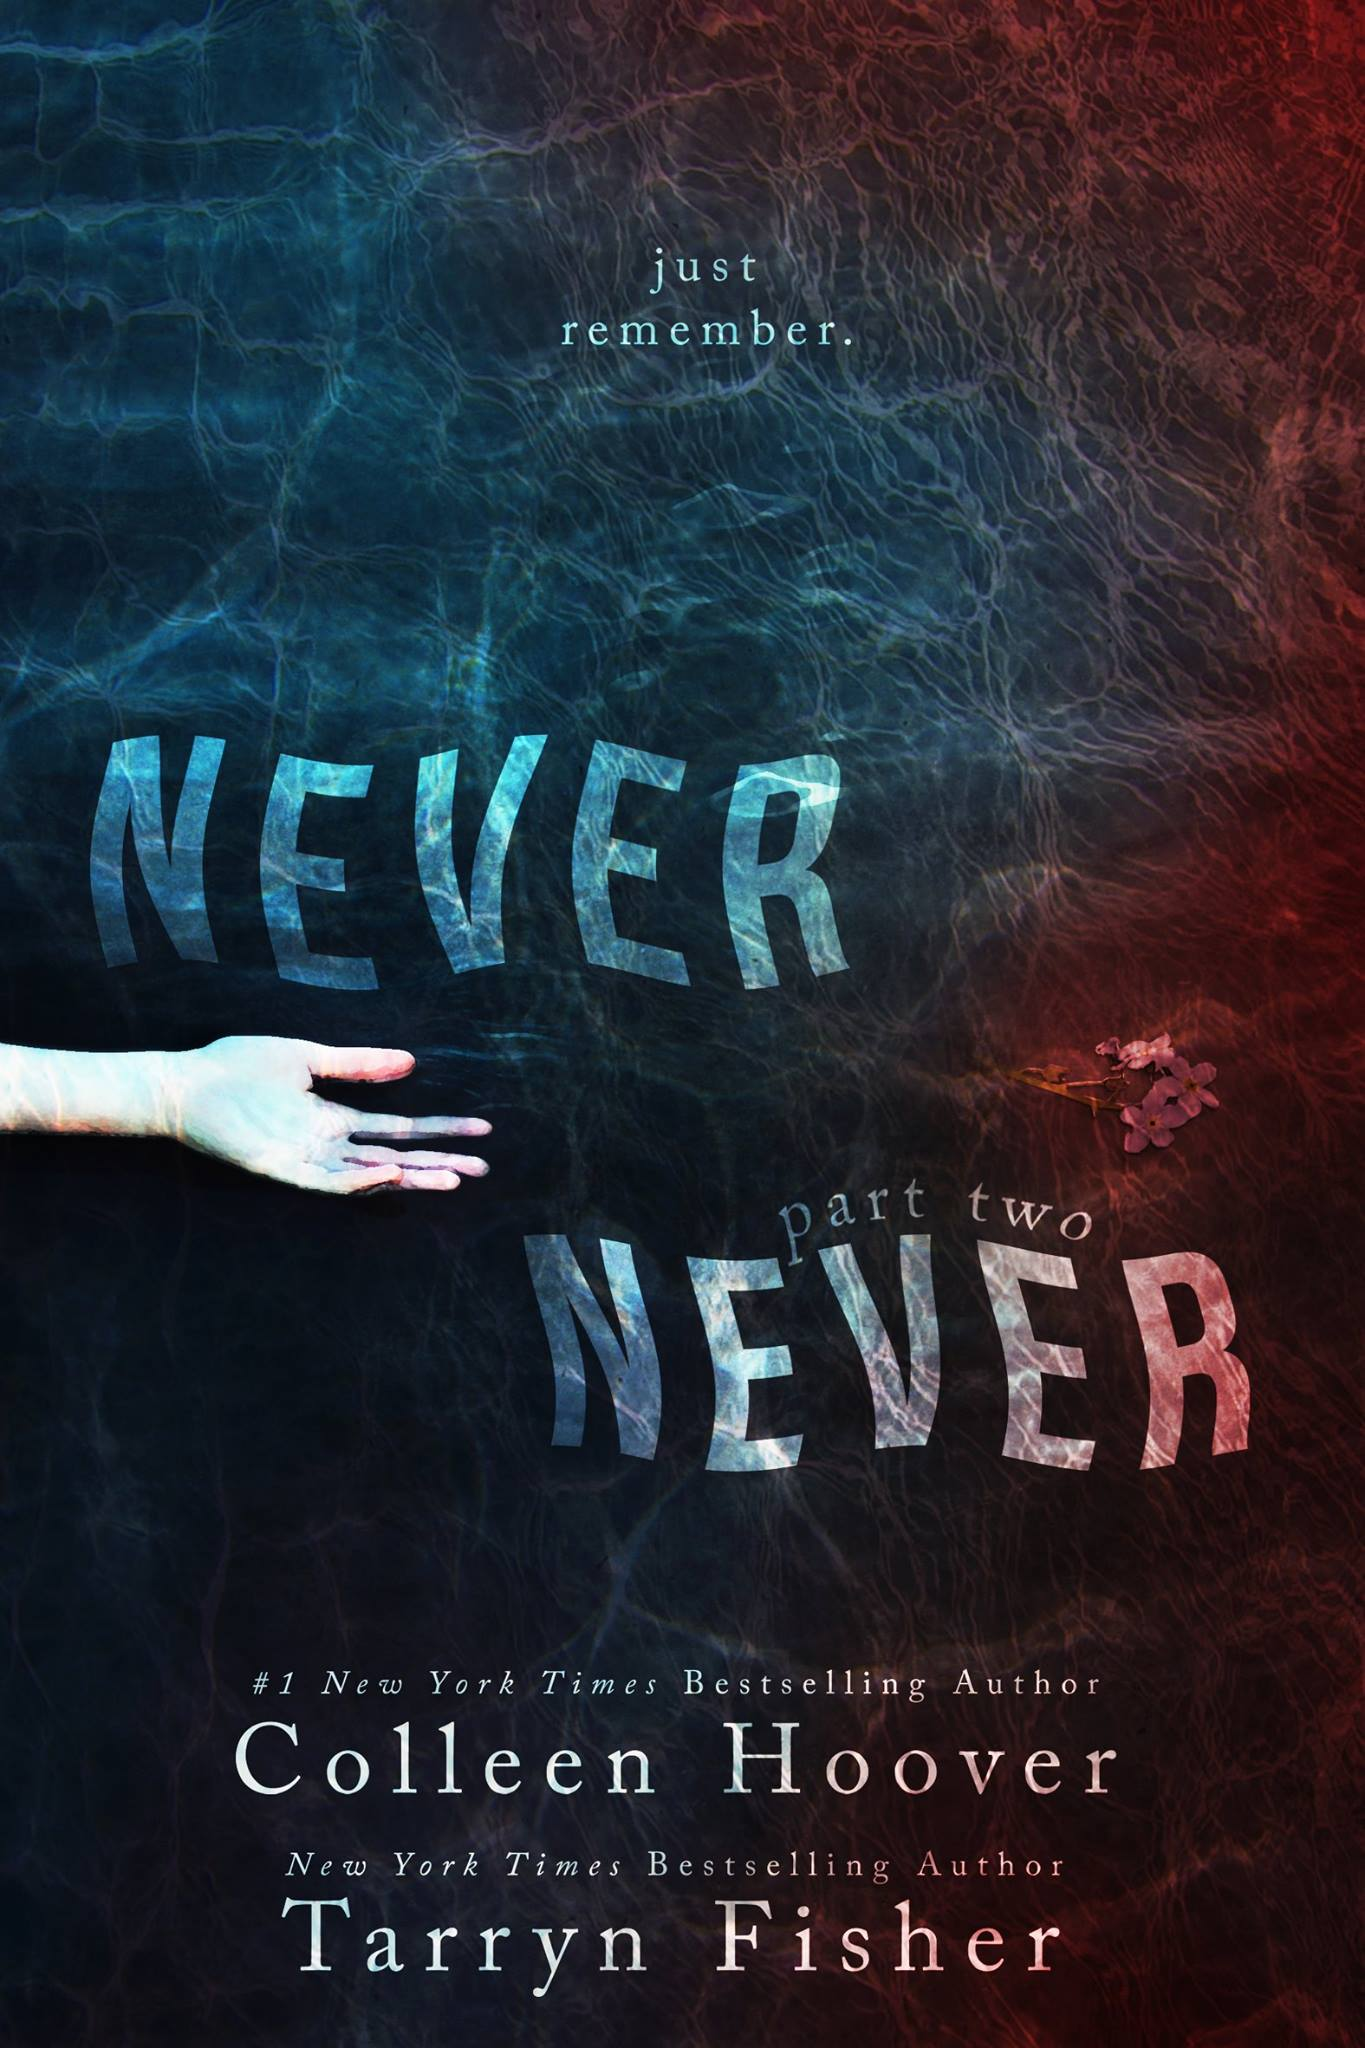 *~*Never Never Part Two by Colleen Hoover and Tarryn Fisher Blog Tour – Review*~*